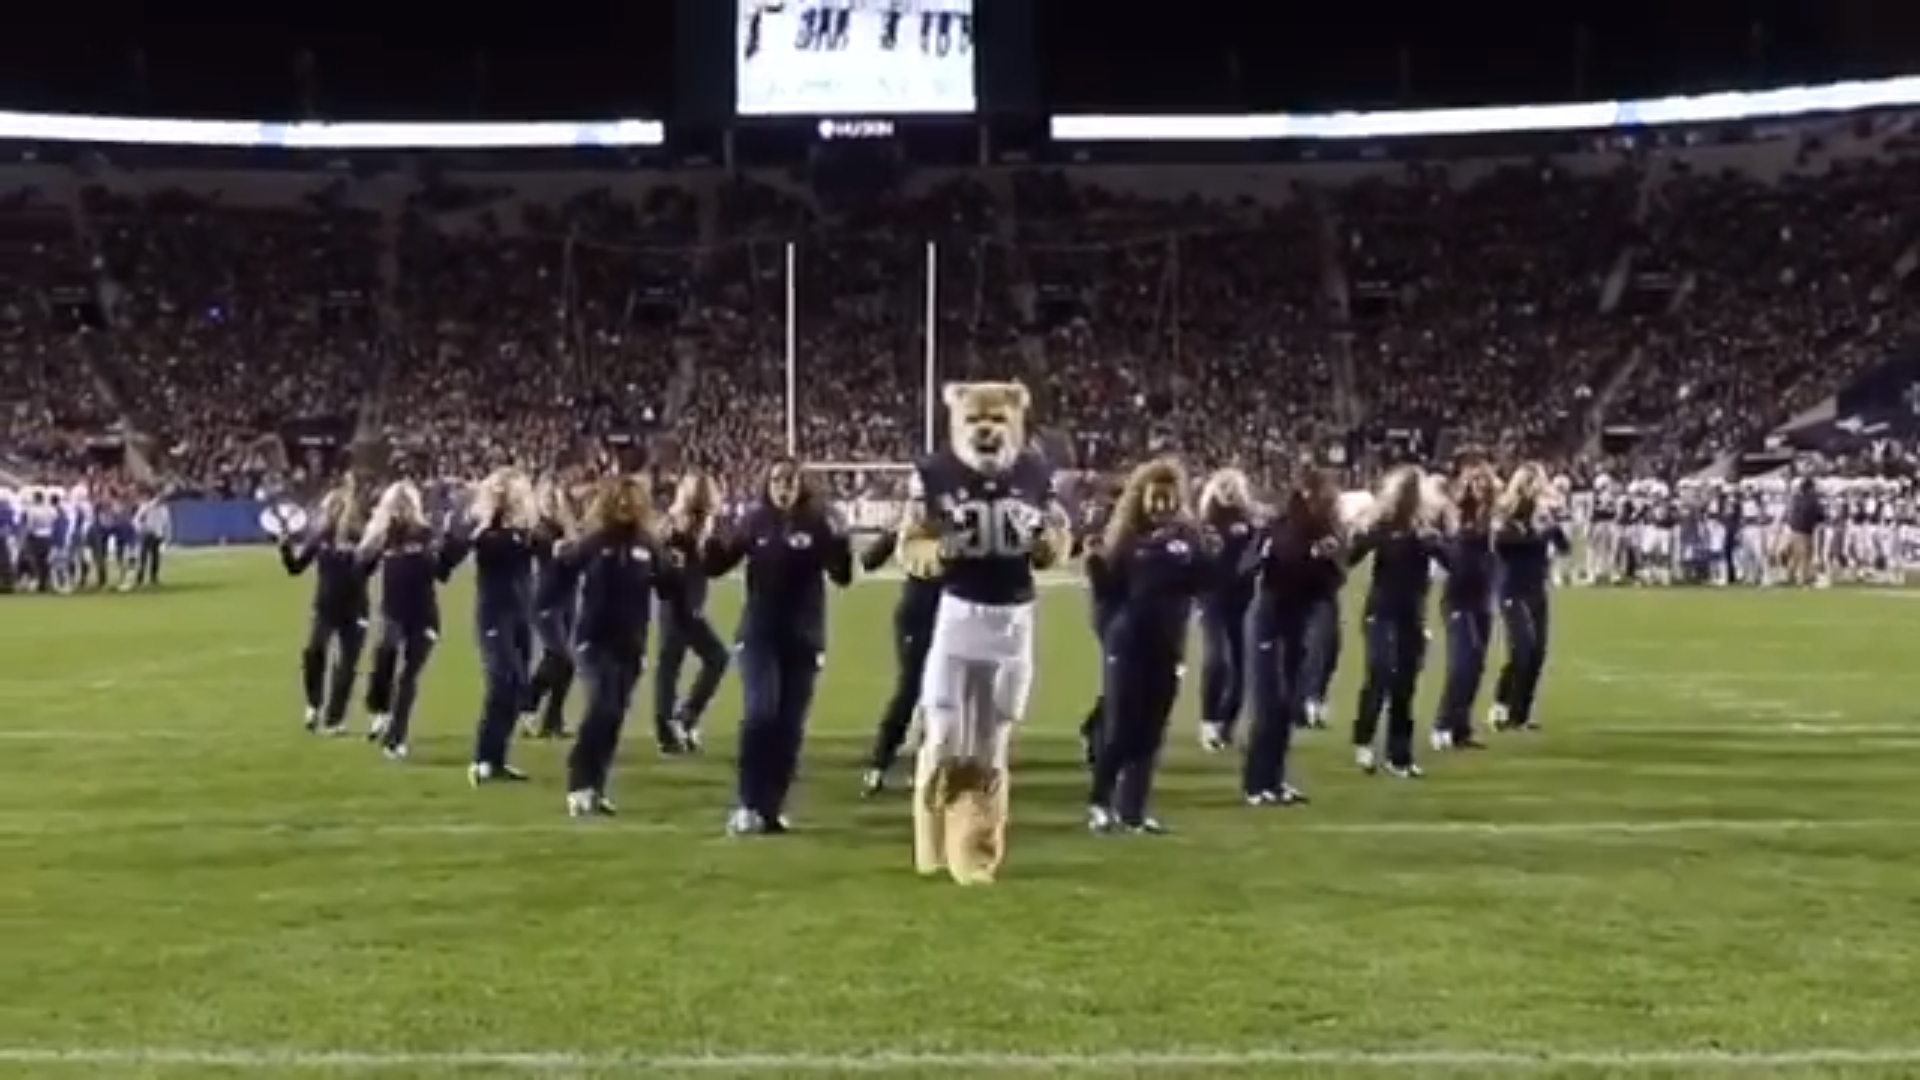 BYU's Cosmo the Cougar Went Viral After Dancing with Cougarette at a Football Game